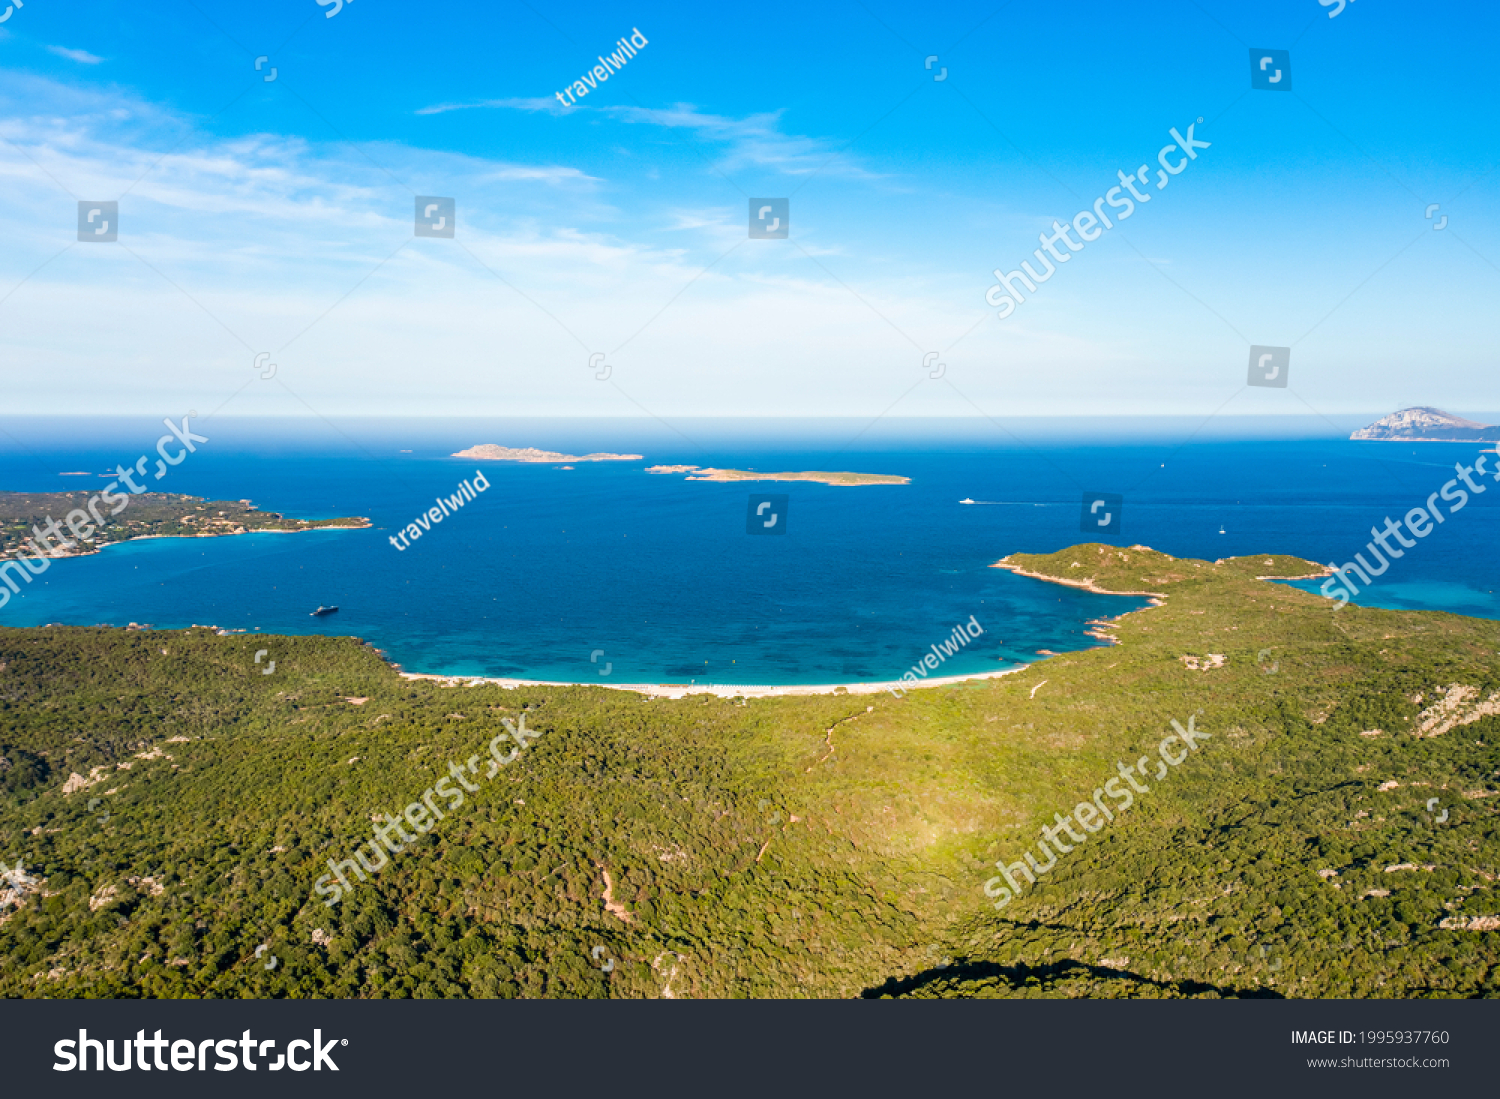 View from above, stunning aerial view of a green coastline with some beaches bathed by a turquoise sea. Liscia Ruja, Costa Smeralda, Sardinia, Italy.  #1995937760